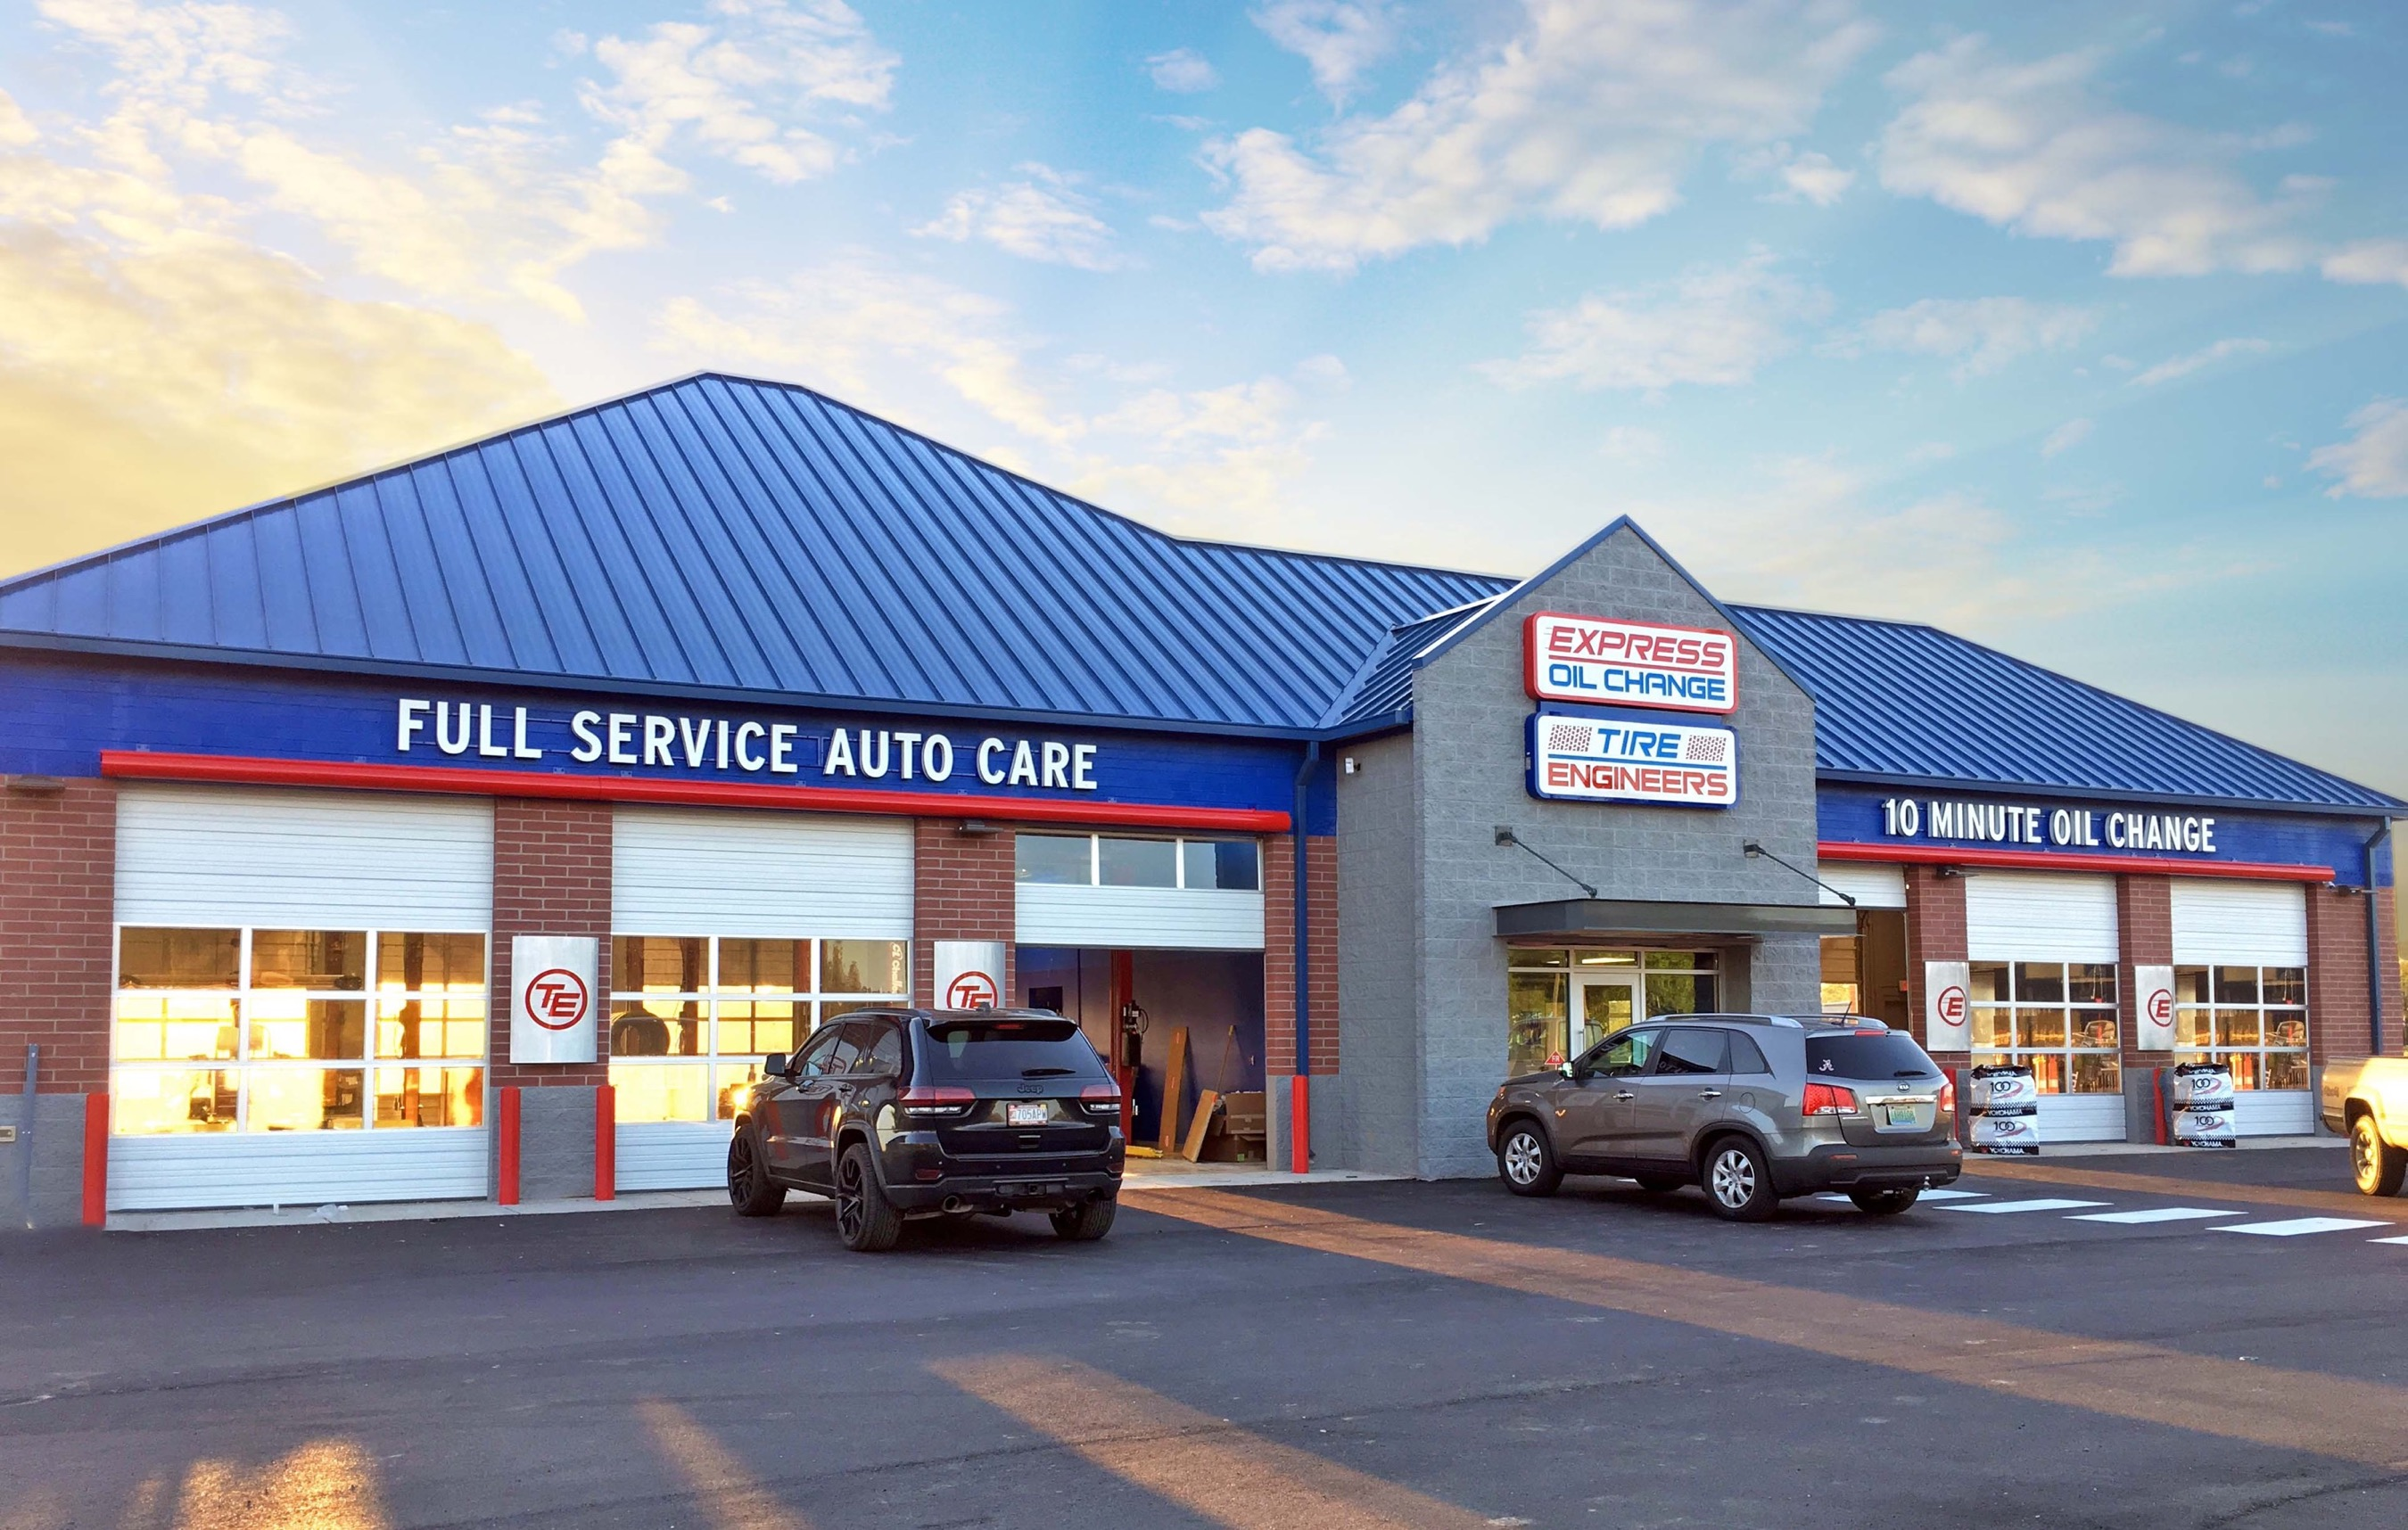 Express Oil Change & Tire Engineers West Point, MS store